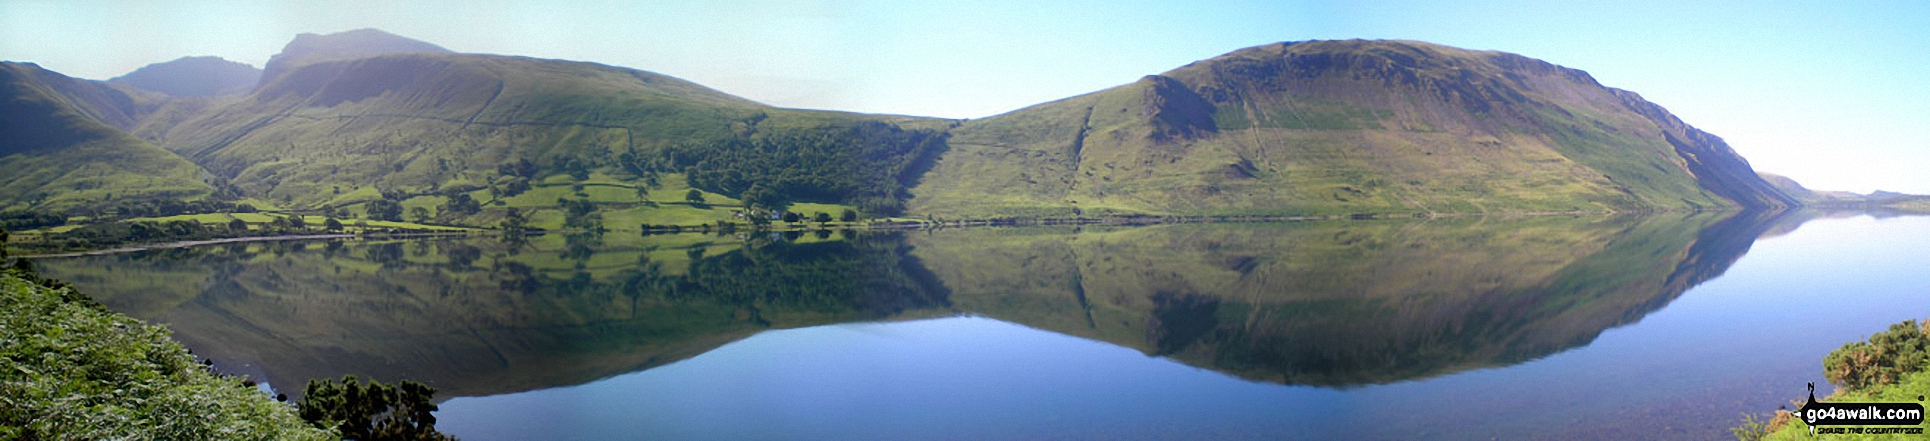 Lingmell (far right), Scafel Pike, Mickledore, Sca Fell and Illgill Head (centre right) from across Overbeck Bridge, Wast Water